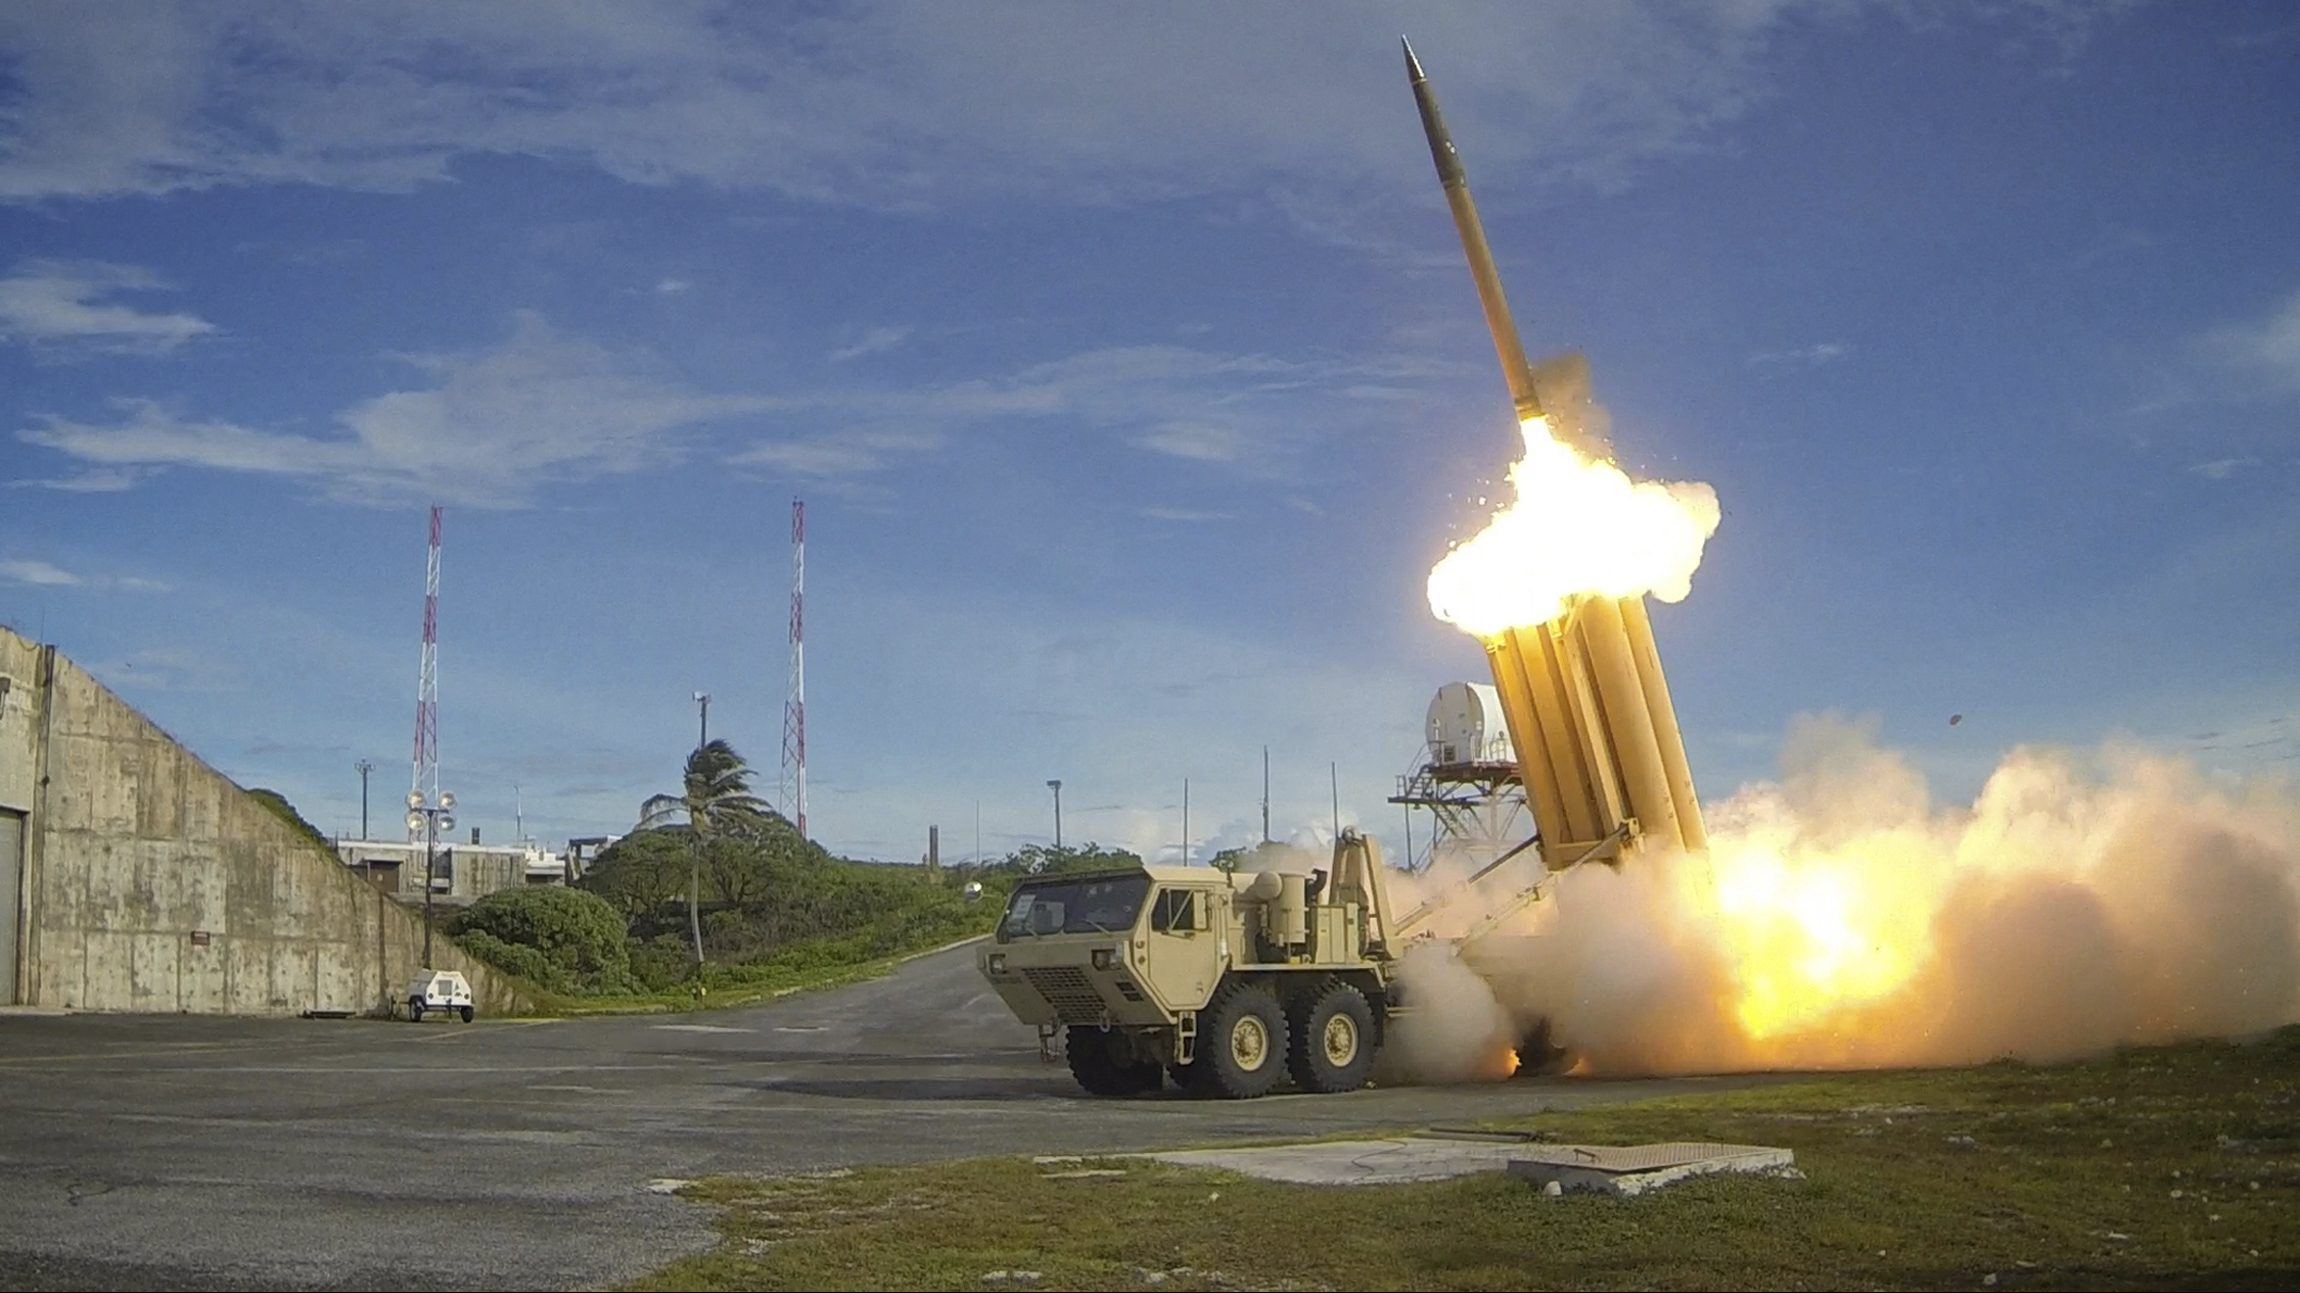 A Terminal High Altitude Area Defense (THAAD) interceptor is launched during a successful intercept test, in this undated handout photo provided by the U.S. Department of Defense, Missile Defense Agency. THAAD provides the U.S. military a land-based, mobile capability to defend against short- and medium-range ballistic missiles, intercepting incoming missiles inside and outside the earth's atmosphere.